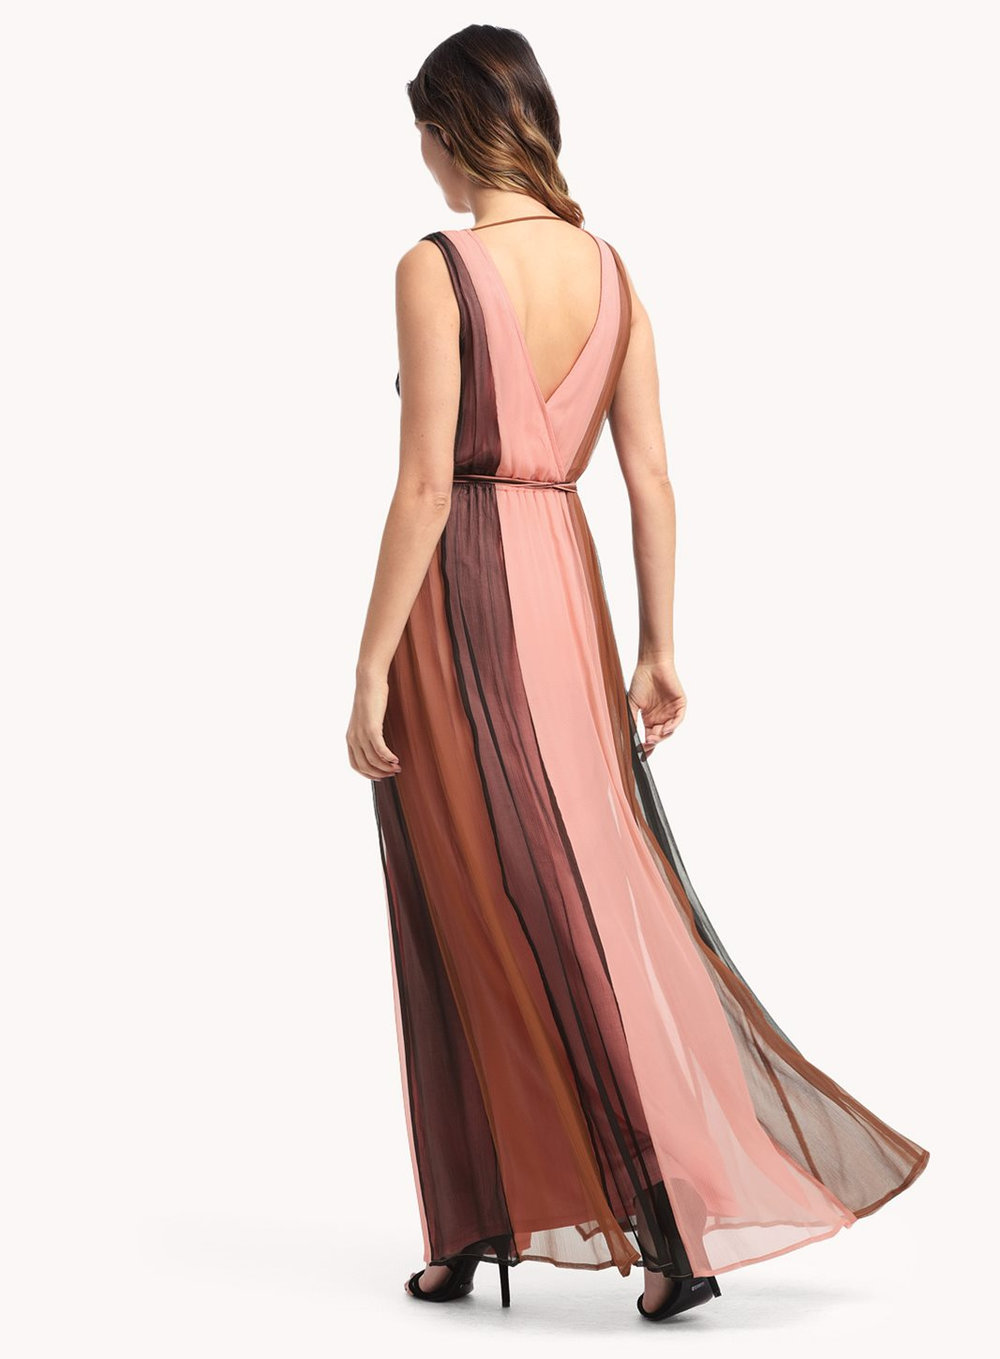 ella-moss-pink-rose-ophelia-maxi-dress-pink.jpeg